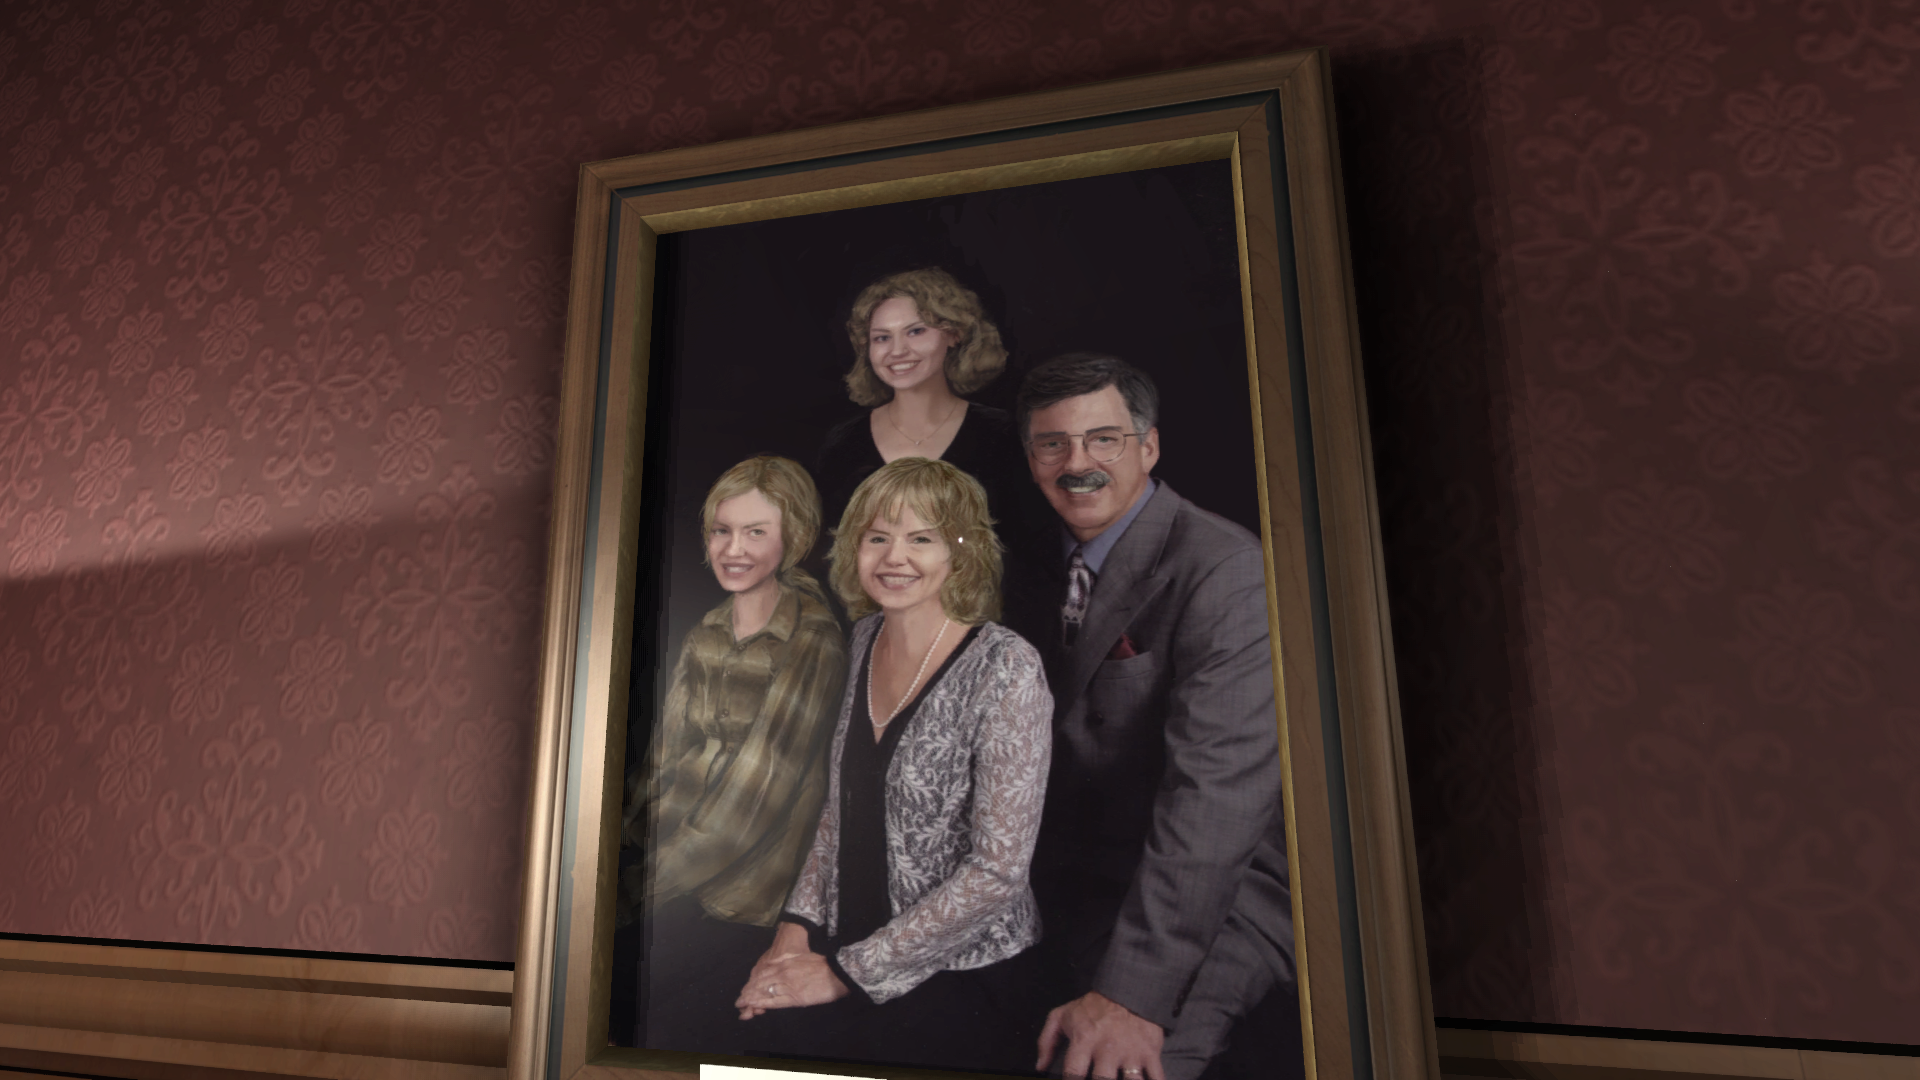 About Gone Home The Fullbright Company